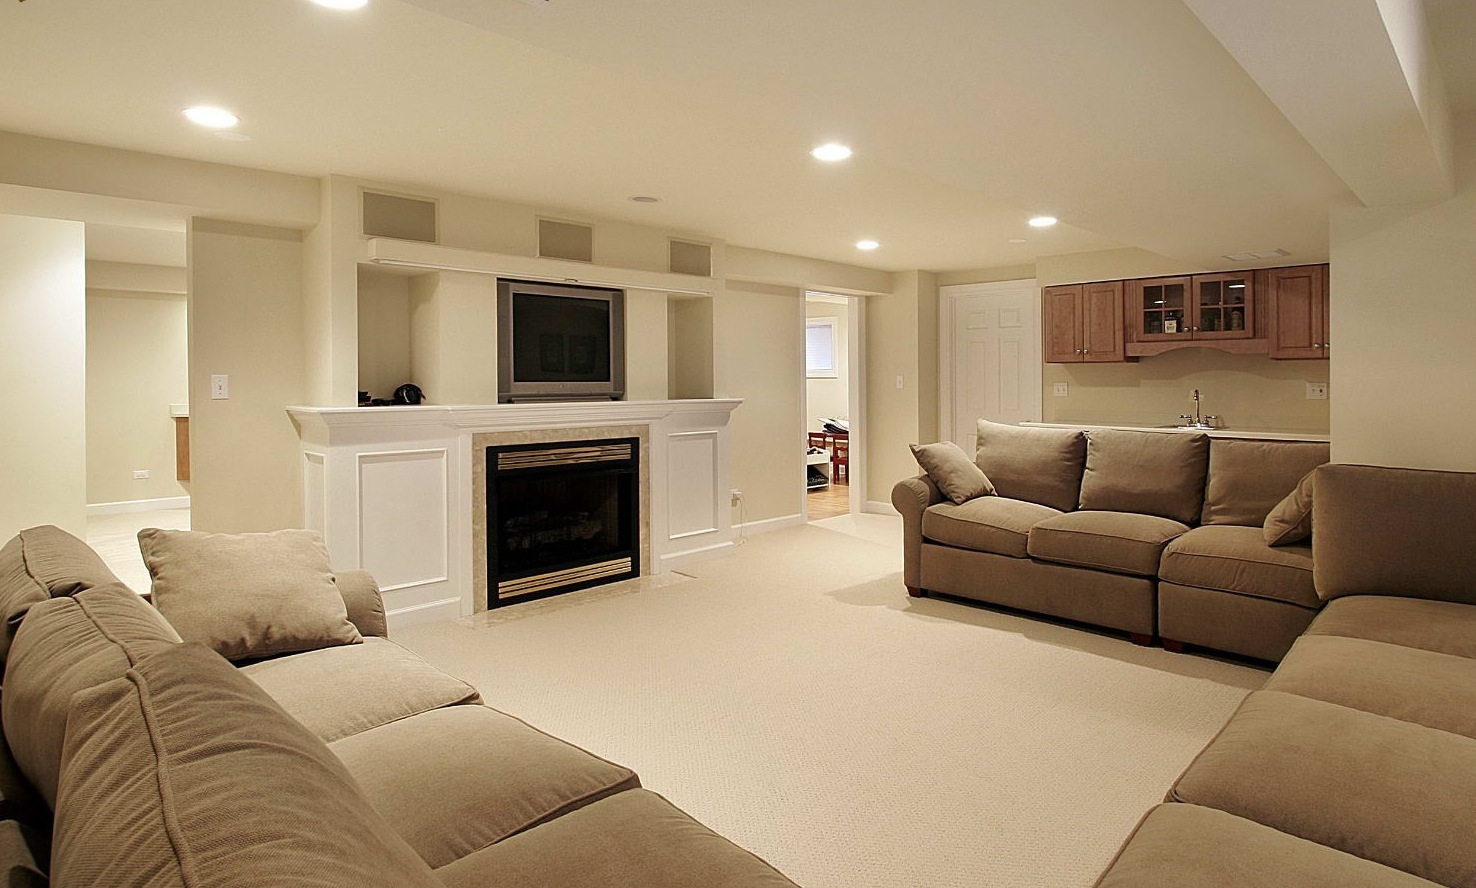 Home Basement Designs Decor Magnificent 30 Basement Remodeling Ideas & Inspiration Review